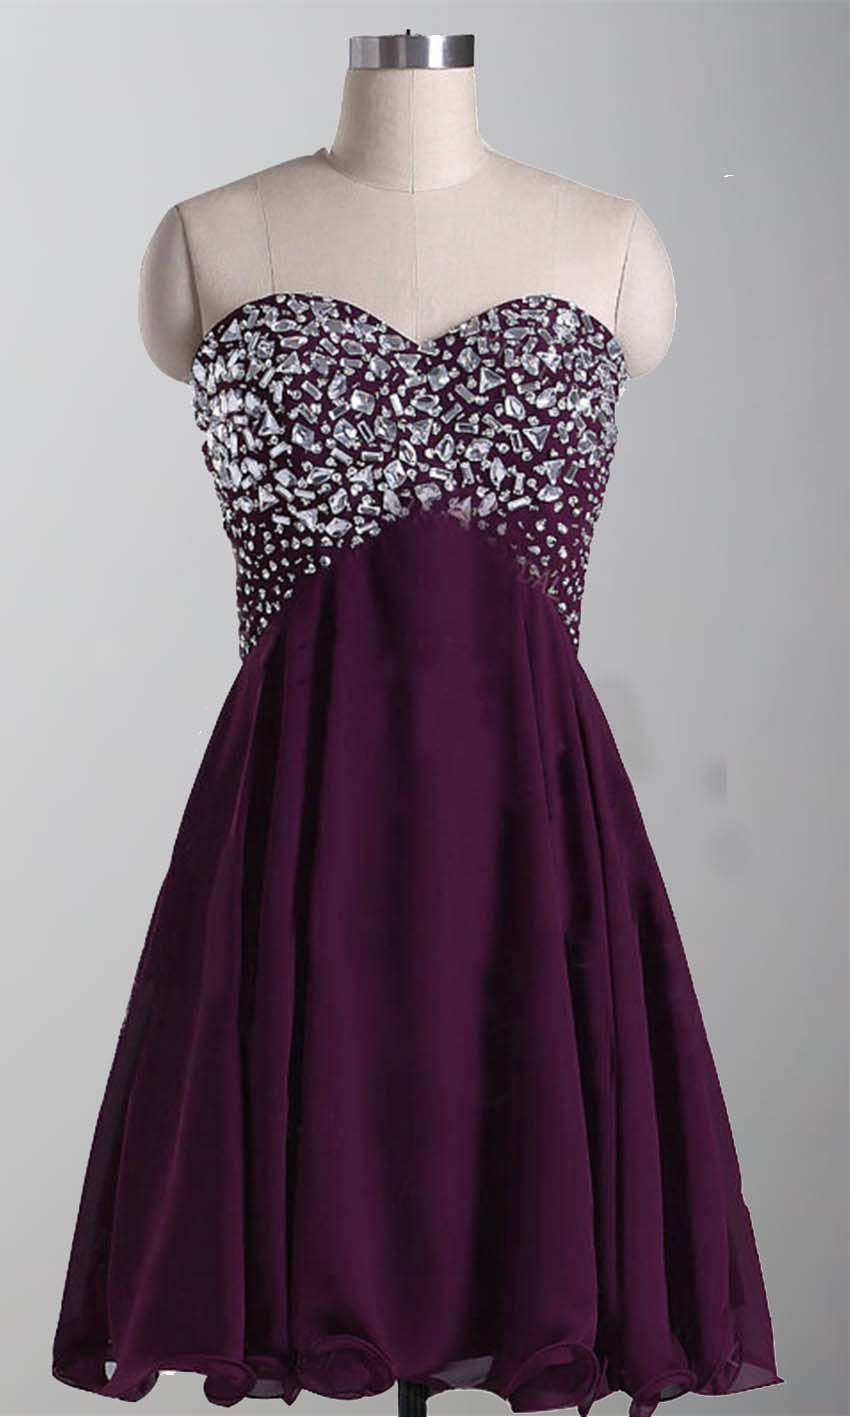 Aubergine Short Rhinestone Bodice Prom Dresses KSP213 [KSP213] - £86.00 : Cheap Prom Dresses Uk, Bridesmaid Dresses, 2014 Prom & Evening Dresses, Look for cheap elegant prom dresses 2014, cocktail gowns, or dresses for special occasions? kissprom.co.uk offers various bridesmaid dresses, evening dress, free shipping to UK etc.